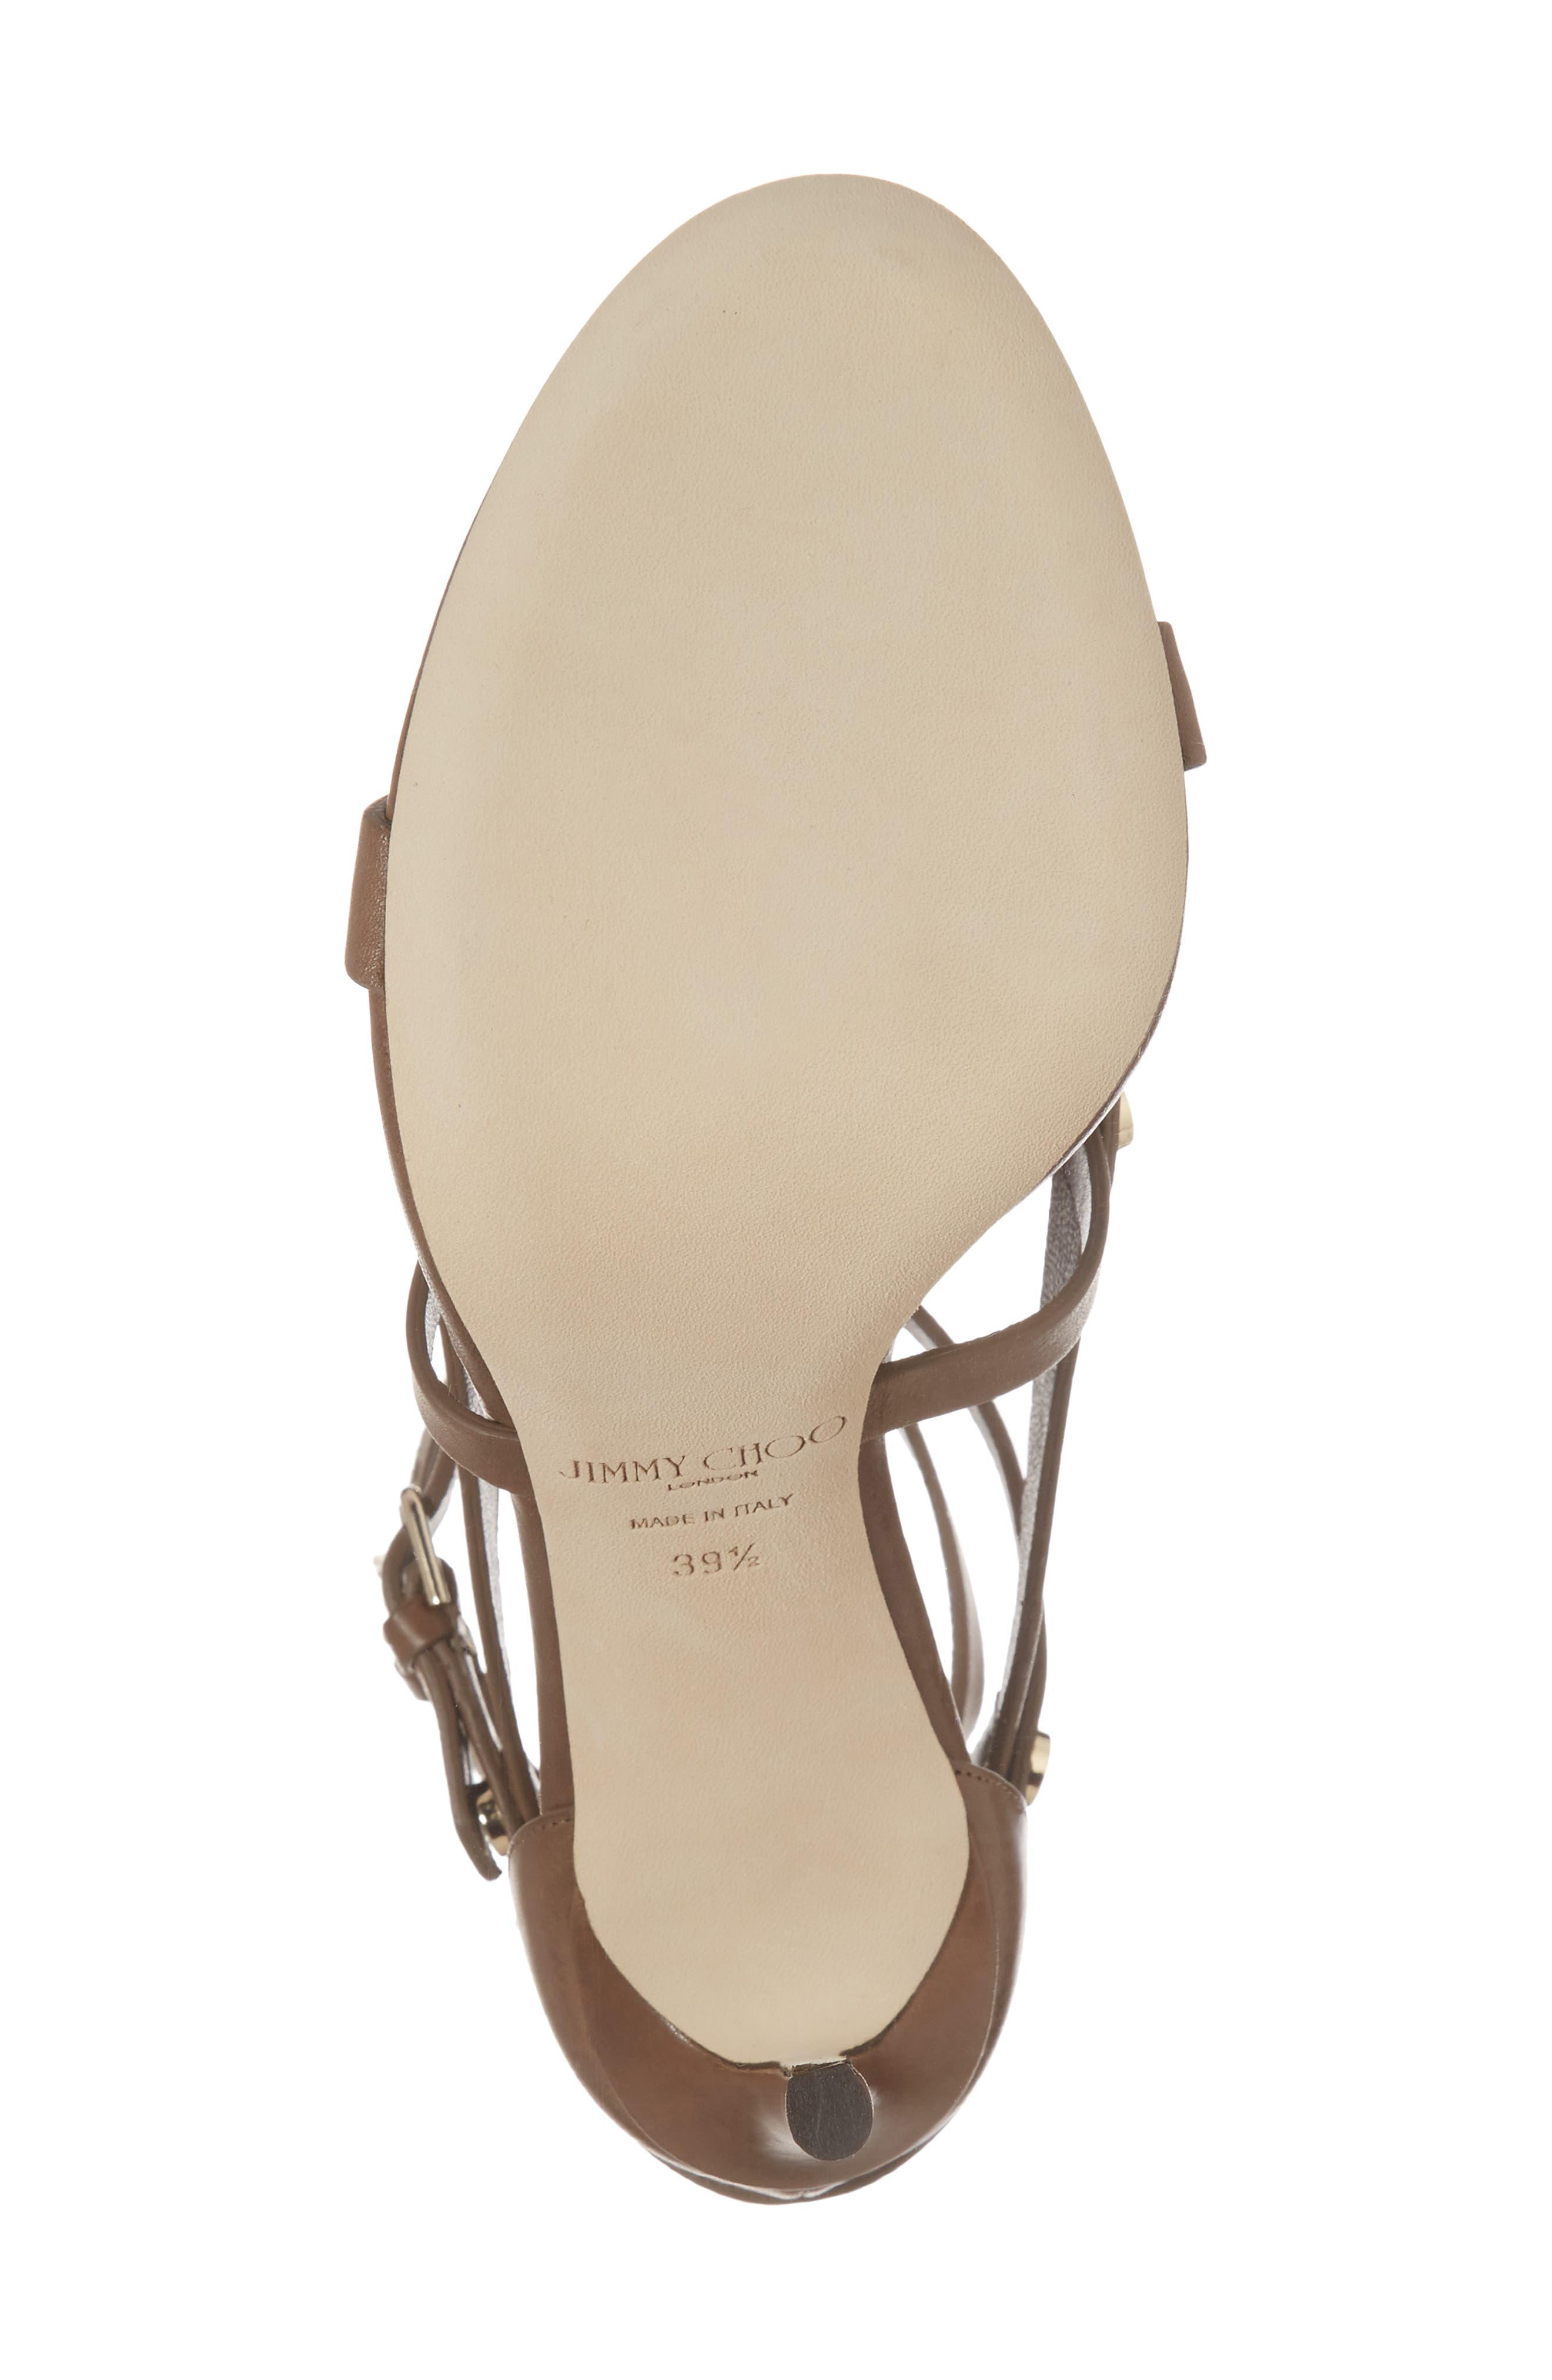 Motoko Studded Cage Sandal,                             Alternate thumbnail 6, color,                             Cacao Brown